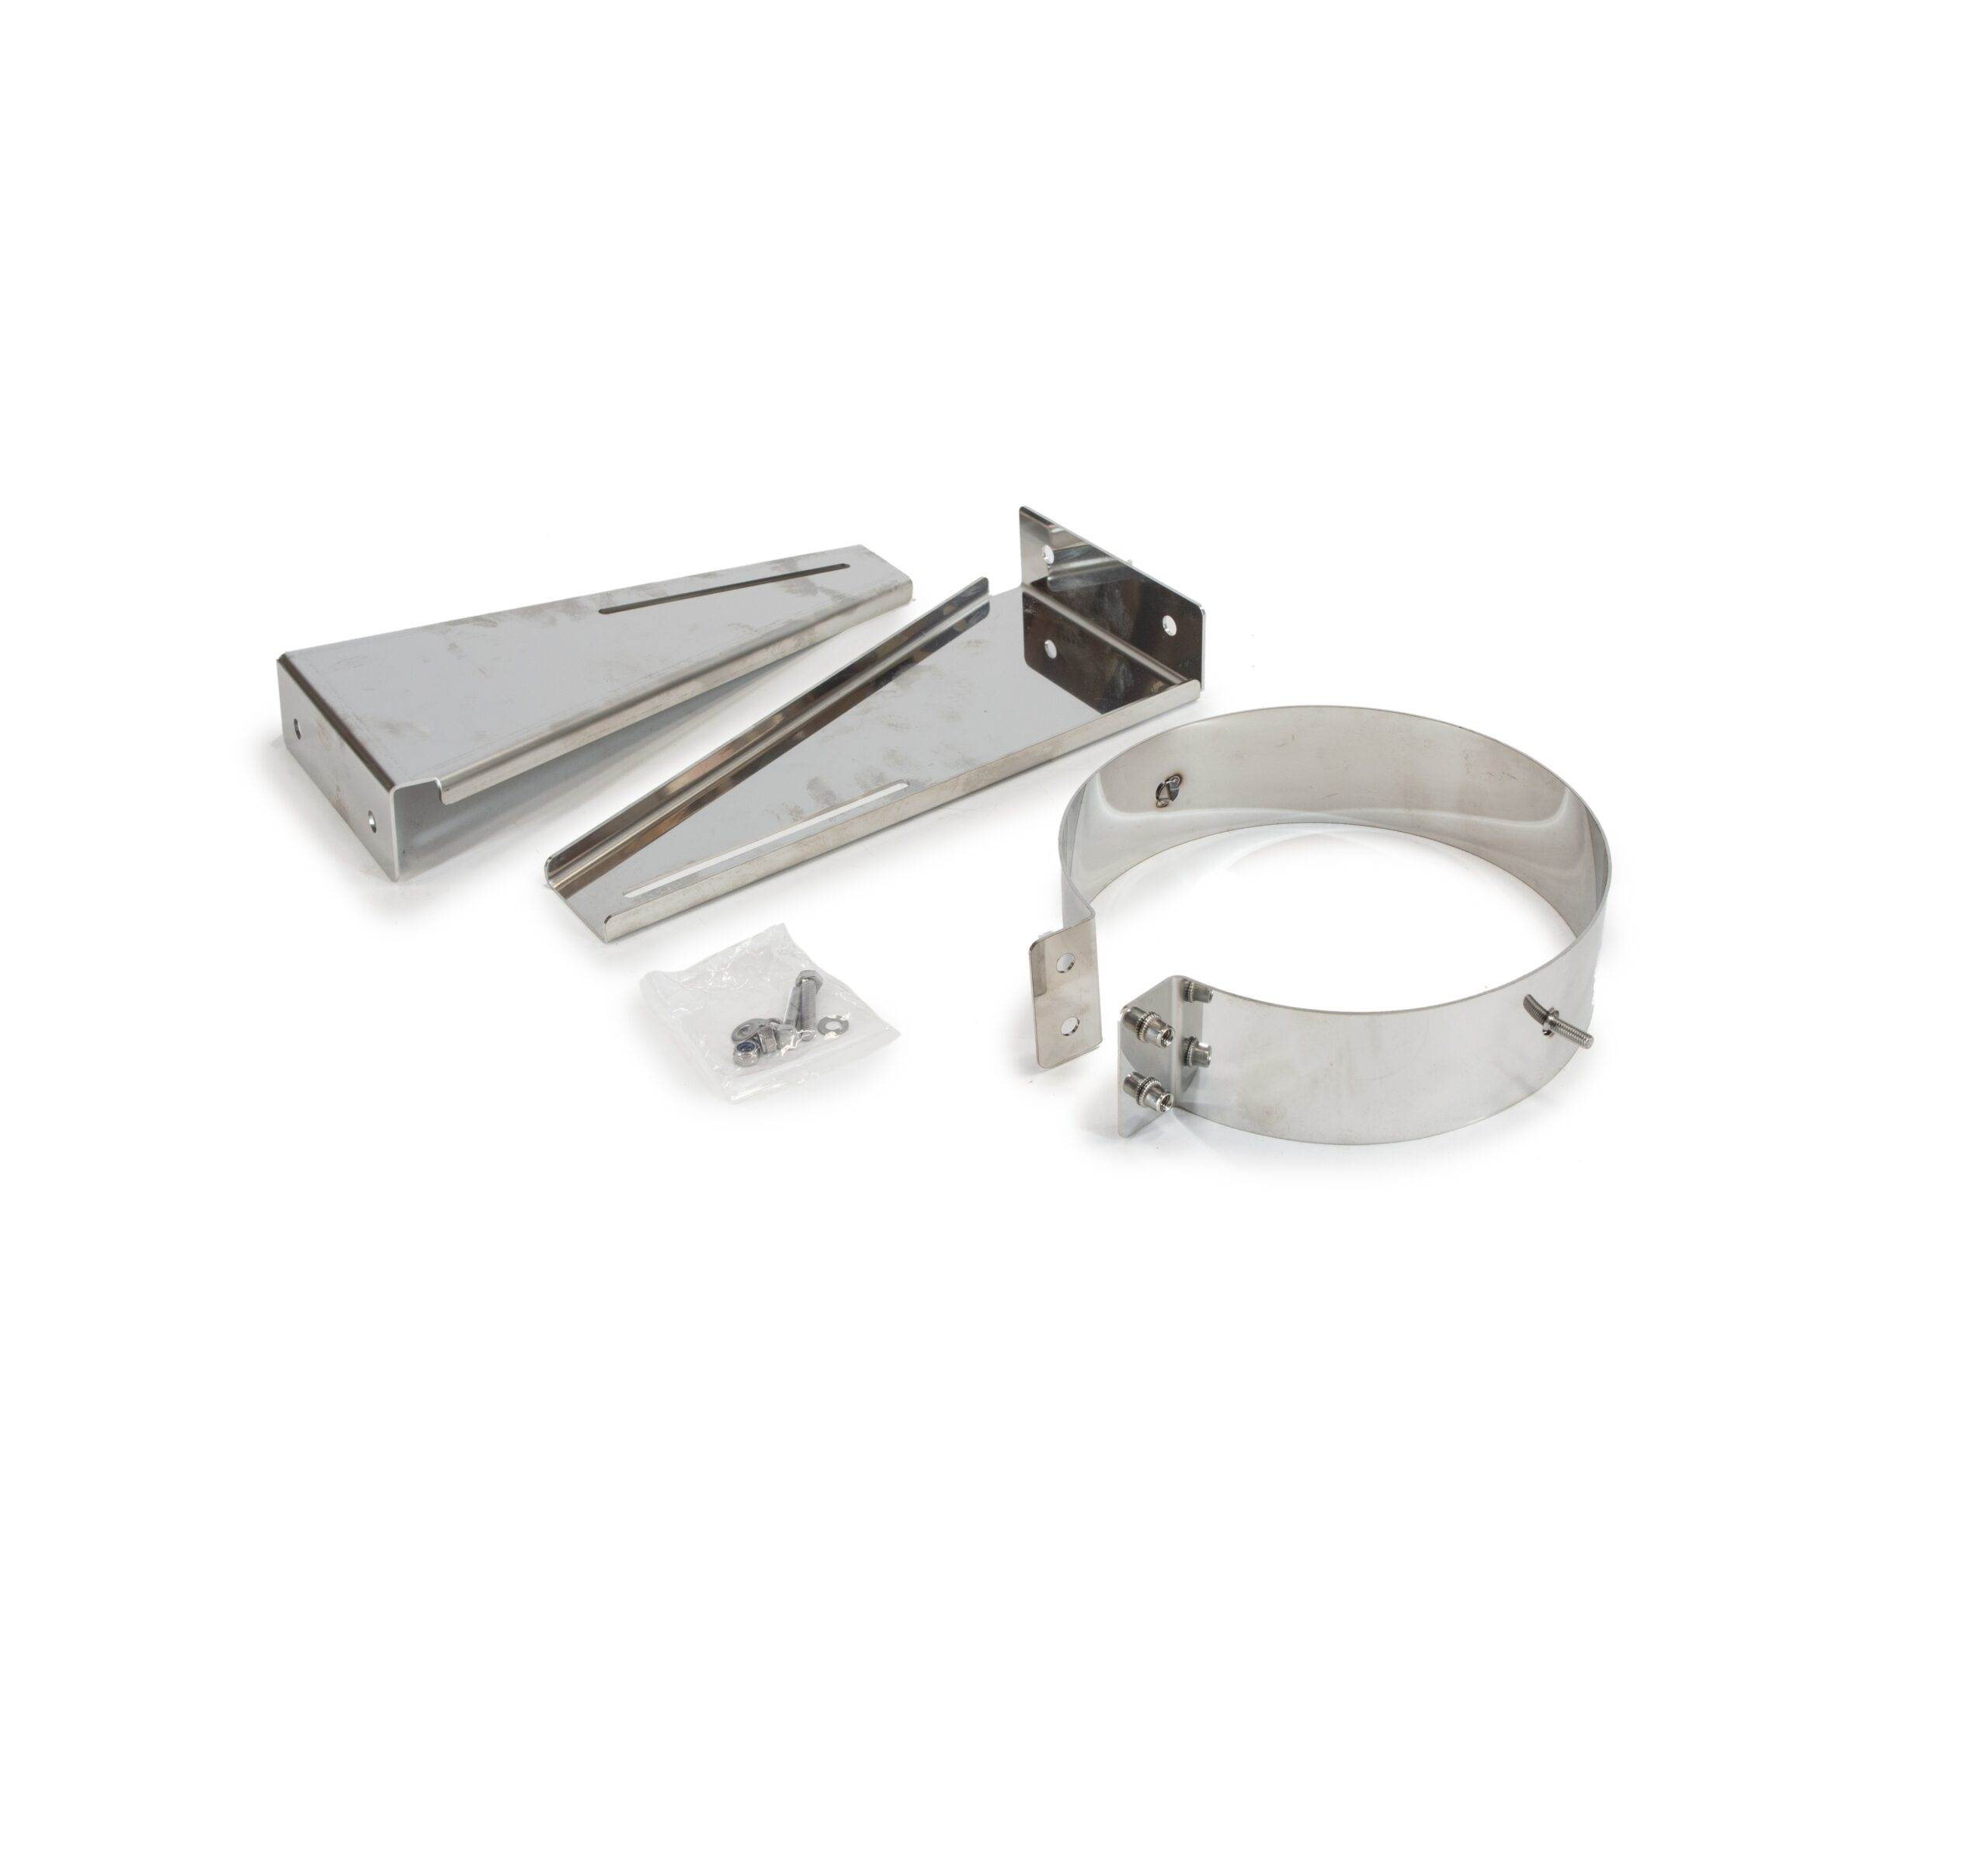 Structural Wall Bracket - Schiedel ICS Twin Wall Flue